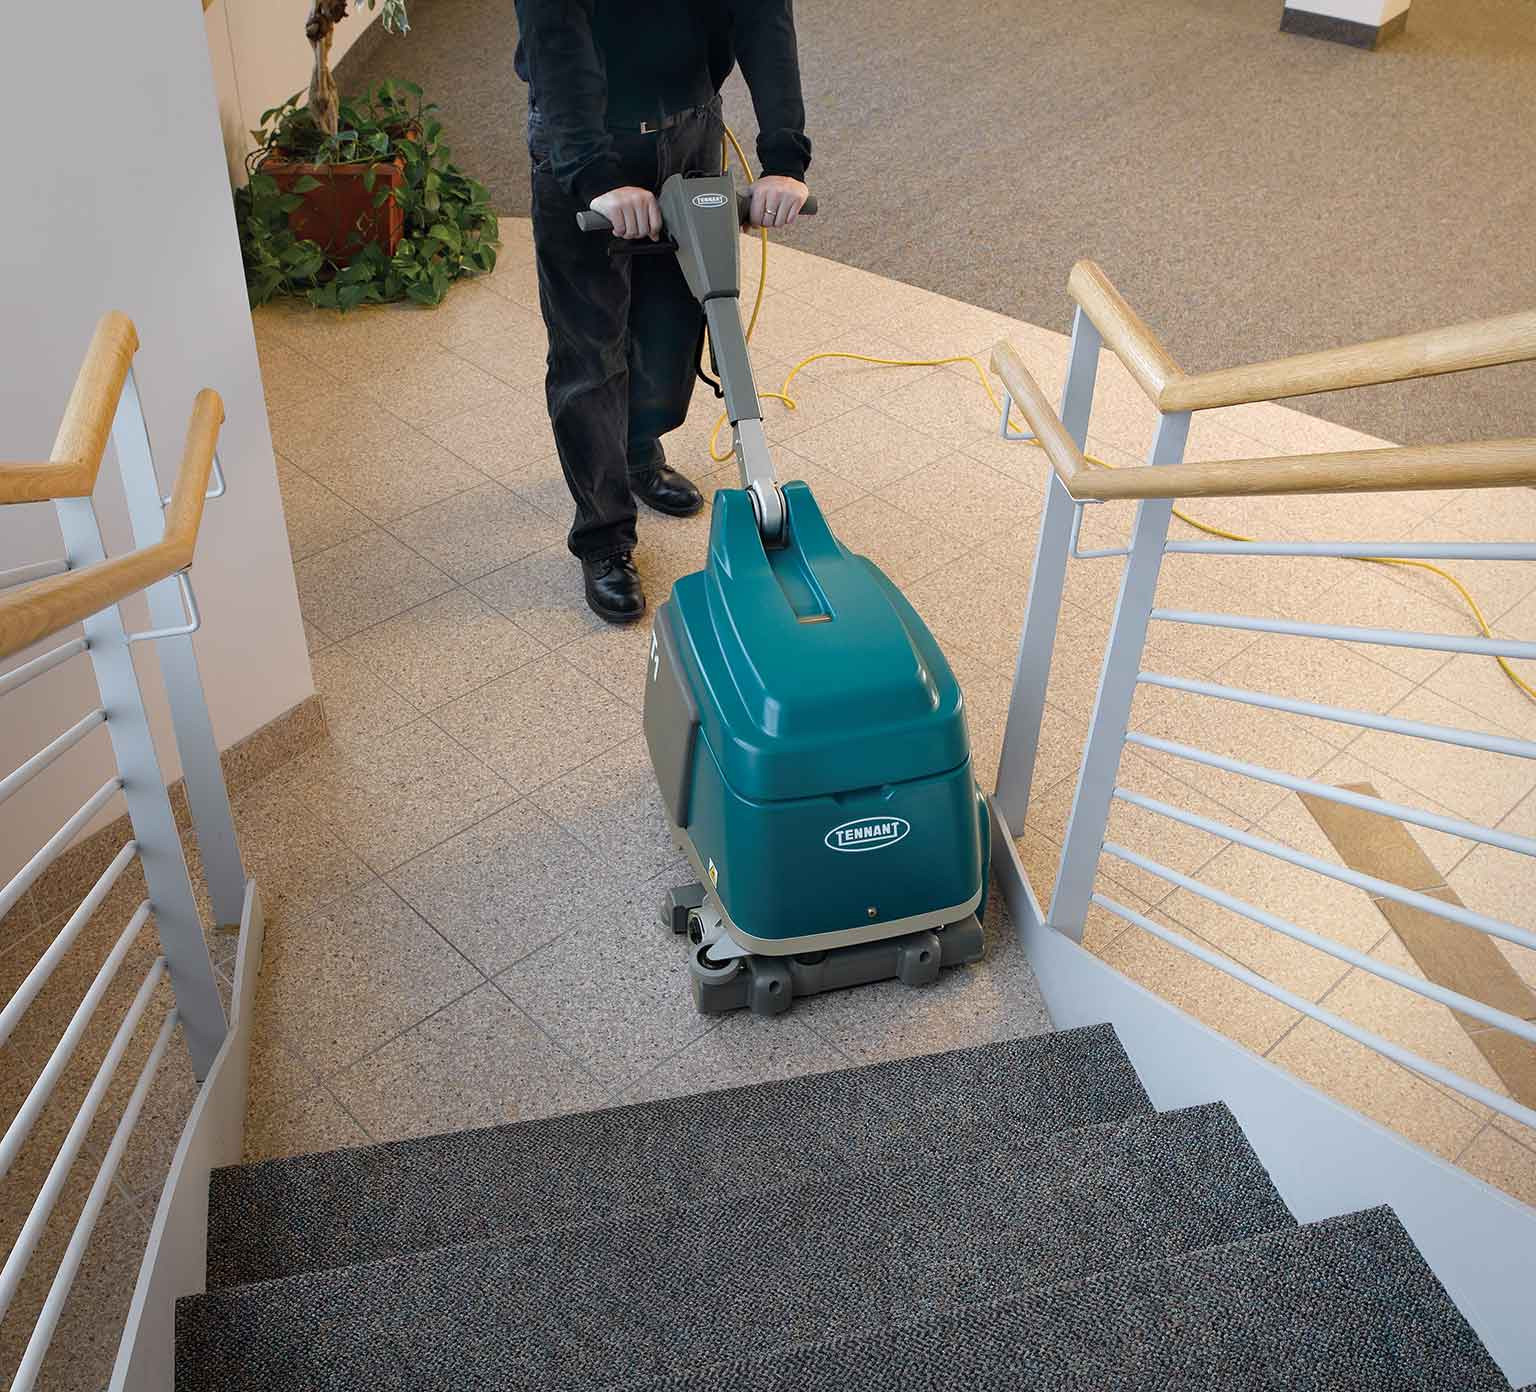 professional hardwood floor cleaning machines of t1 walk behind micro scrubber tennant company with t1 walk behind micro scrubber alt 8